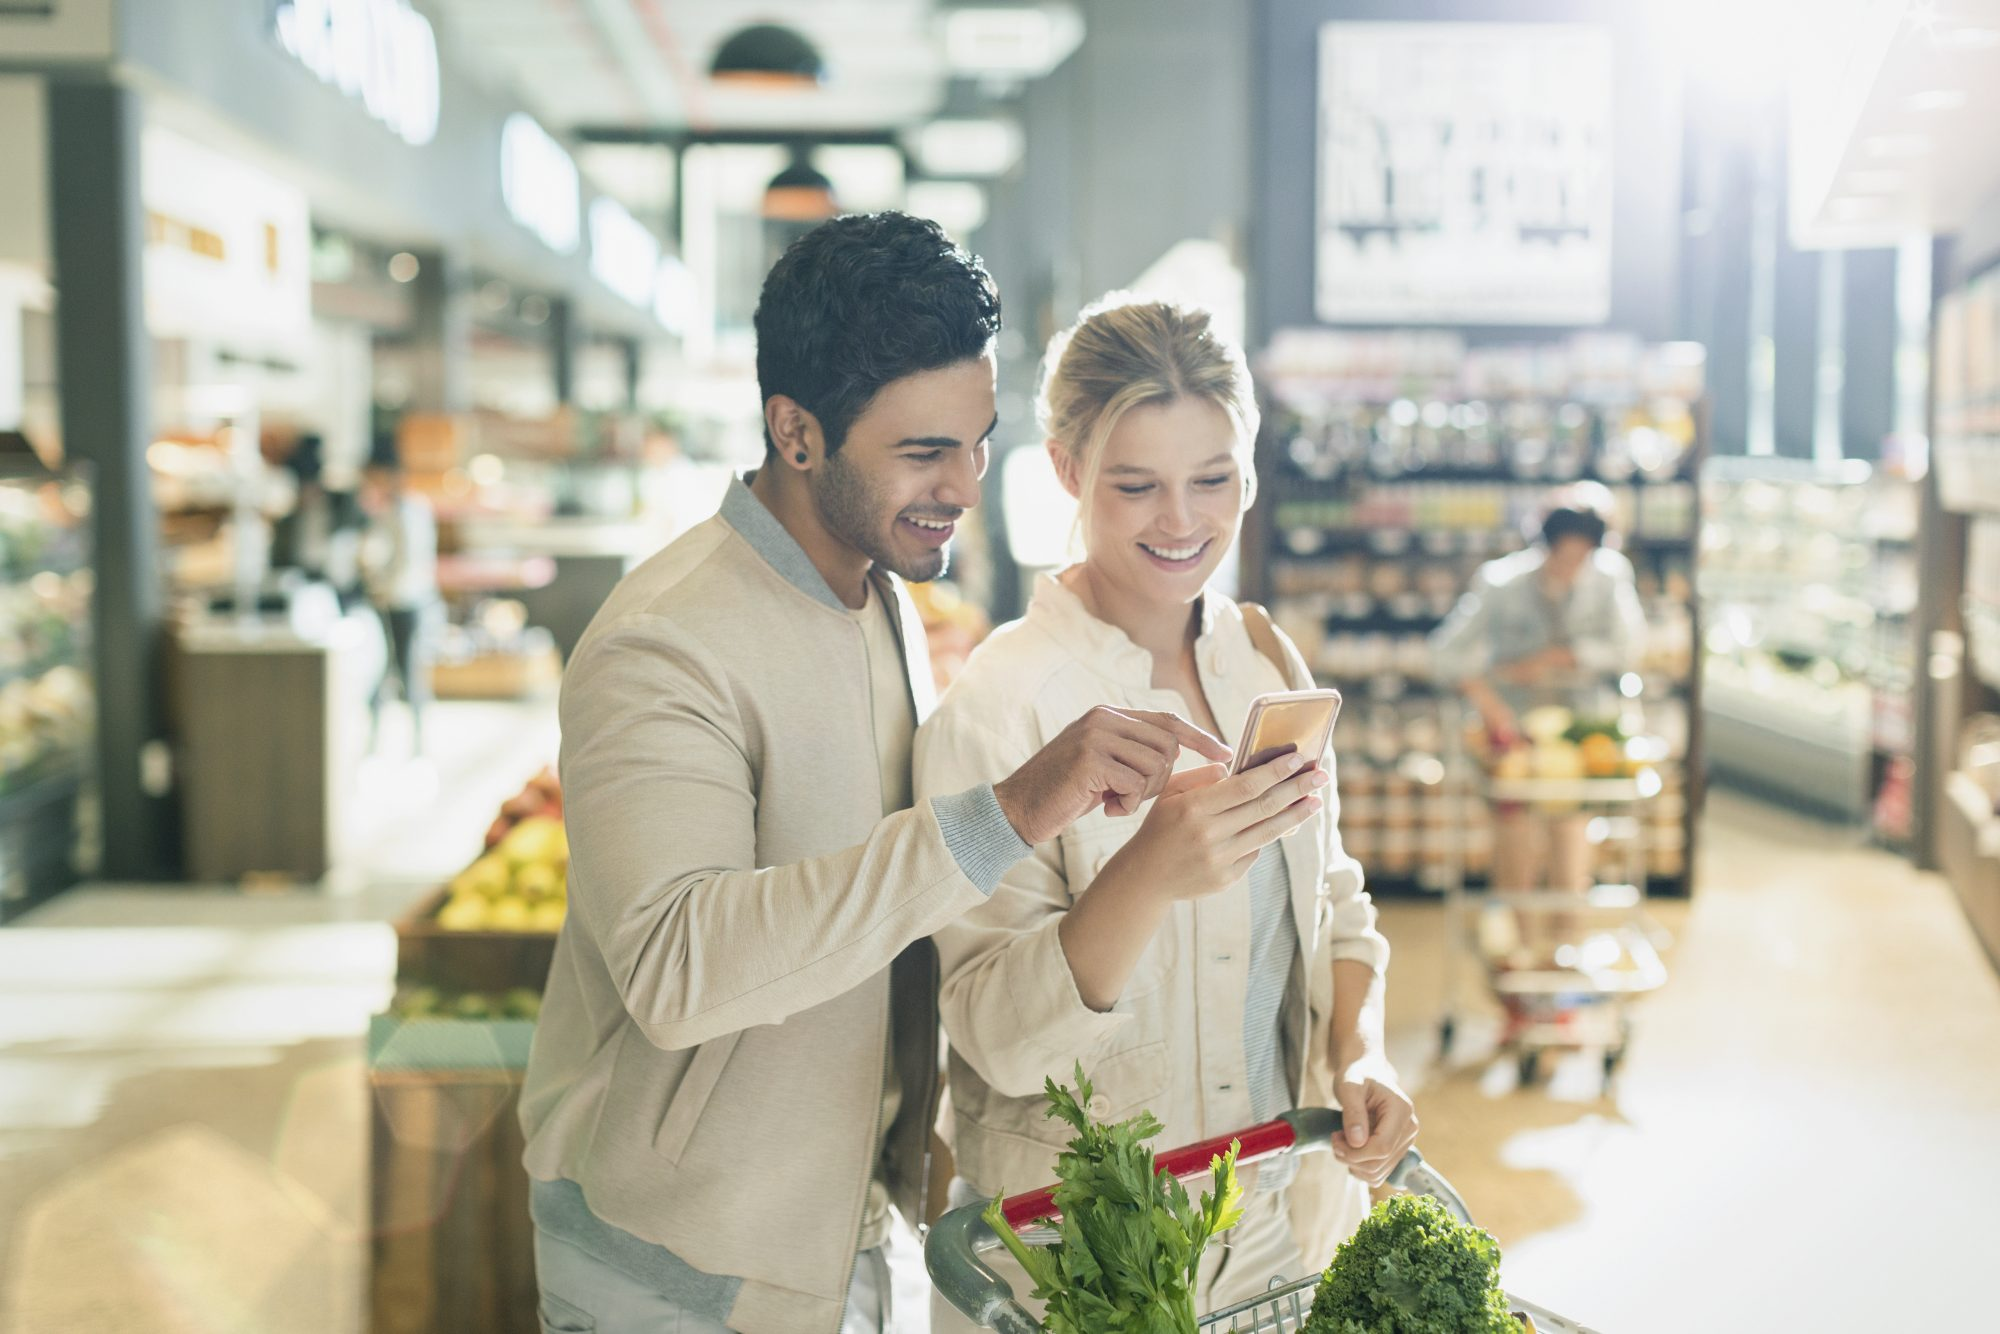 getty-young-couple-grocery-shopping-image